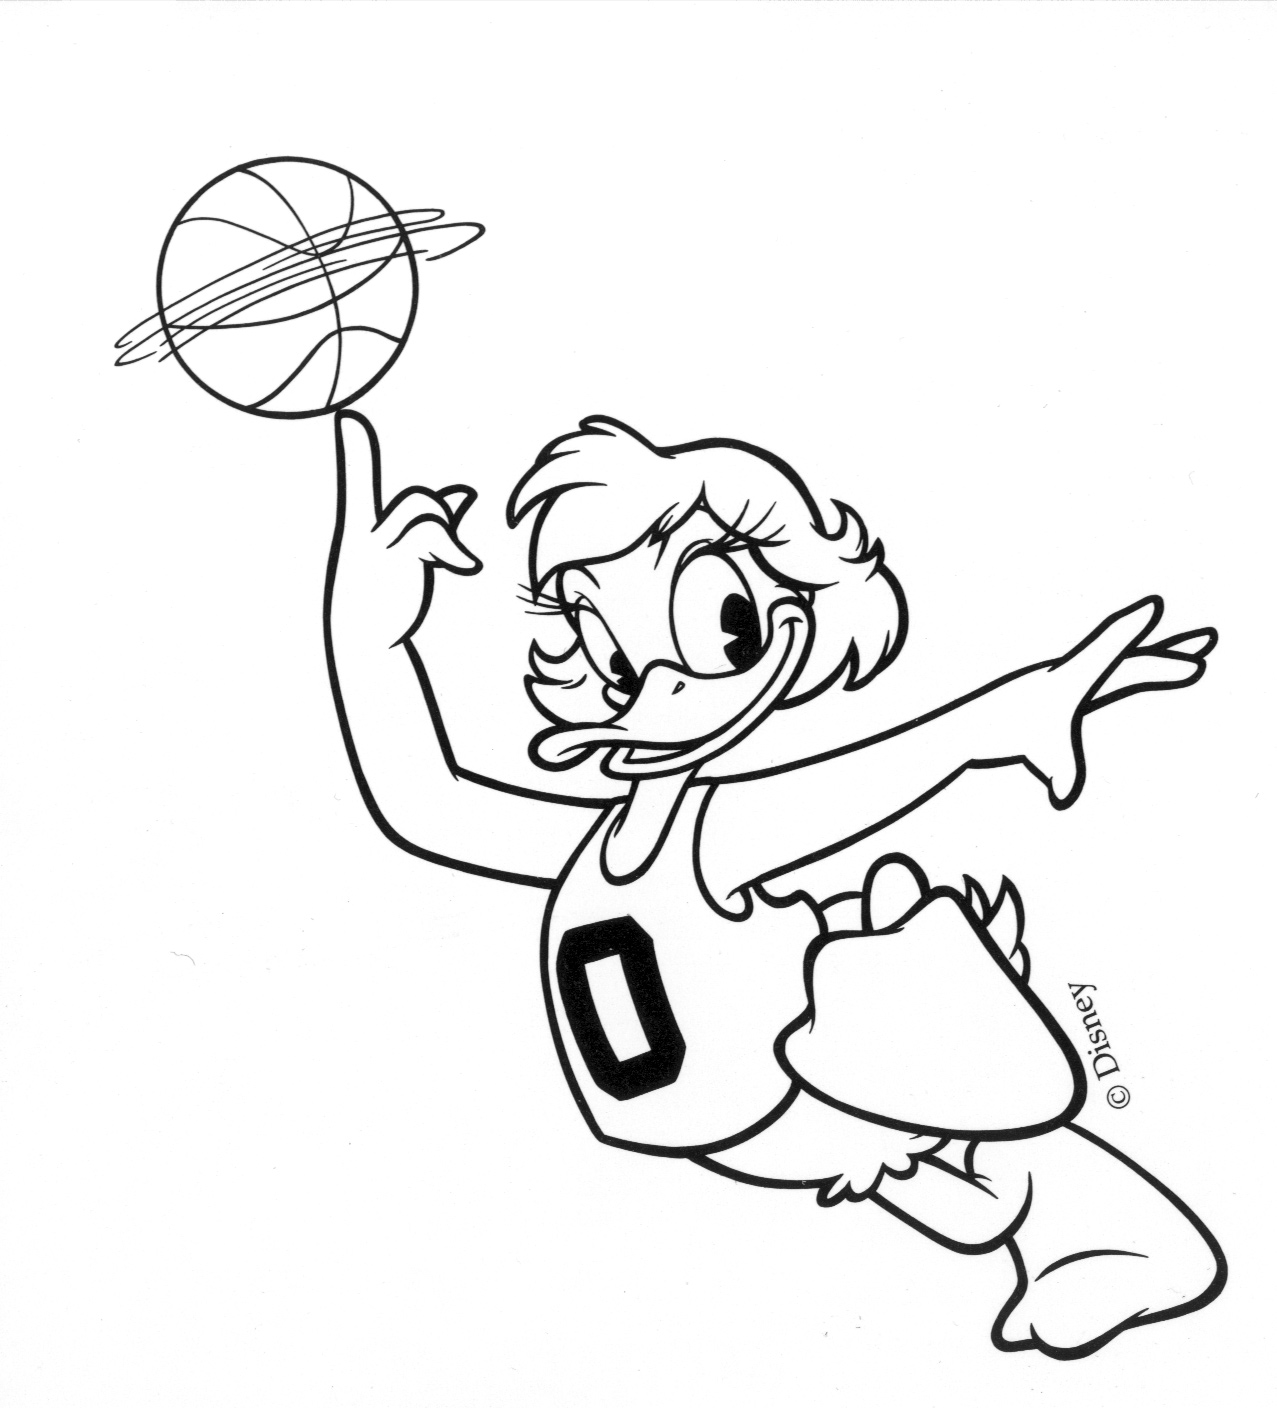 1277x1408 Old School Oregon Basketball Daisy Duck Logo The Duck Amp Friends